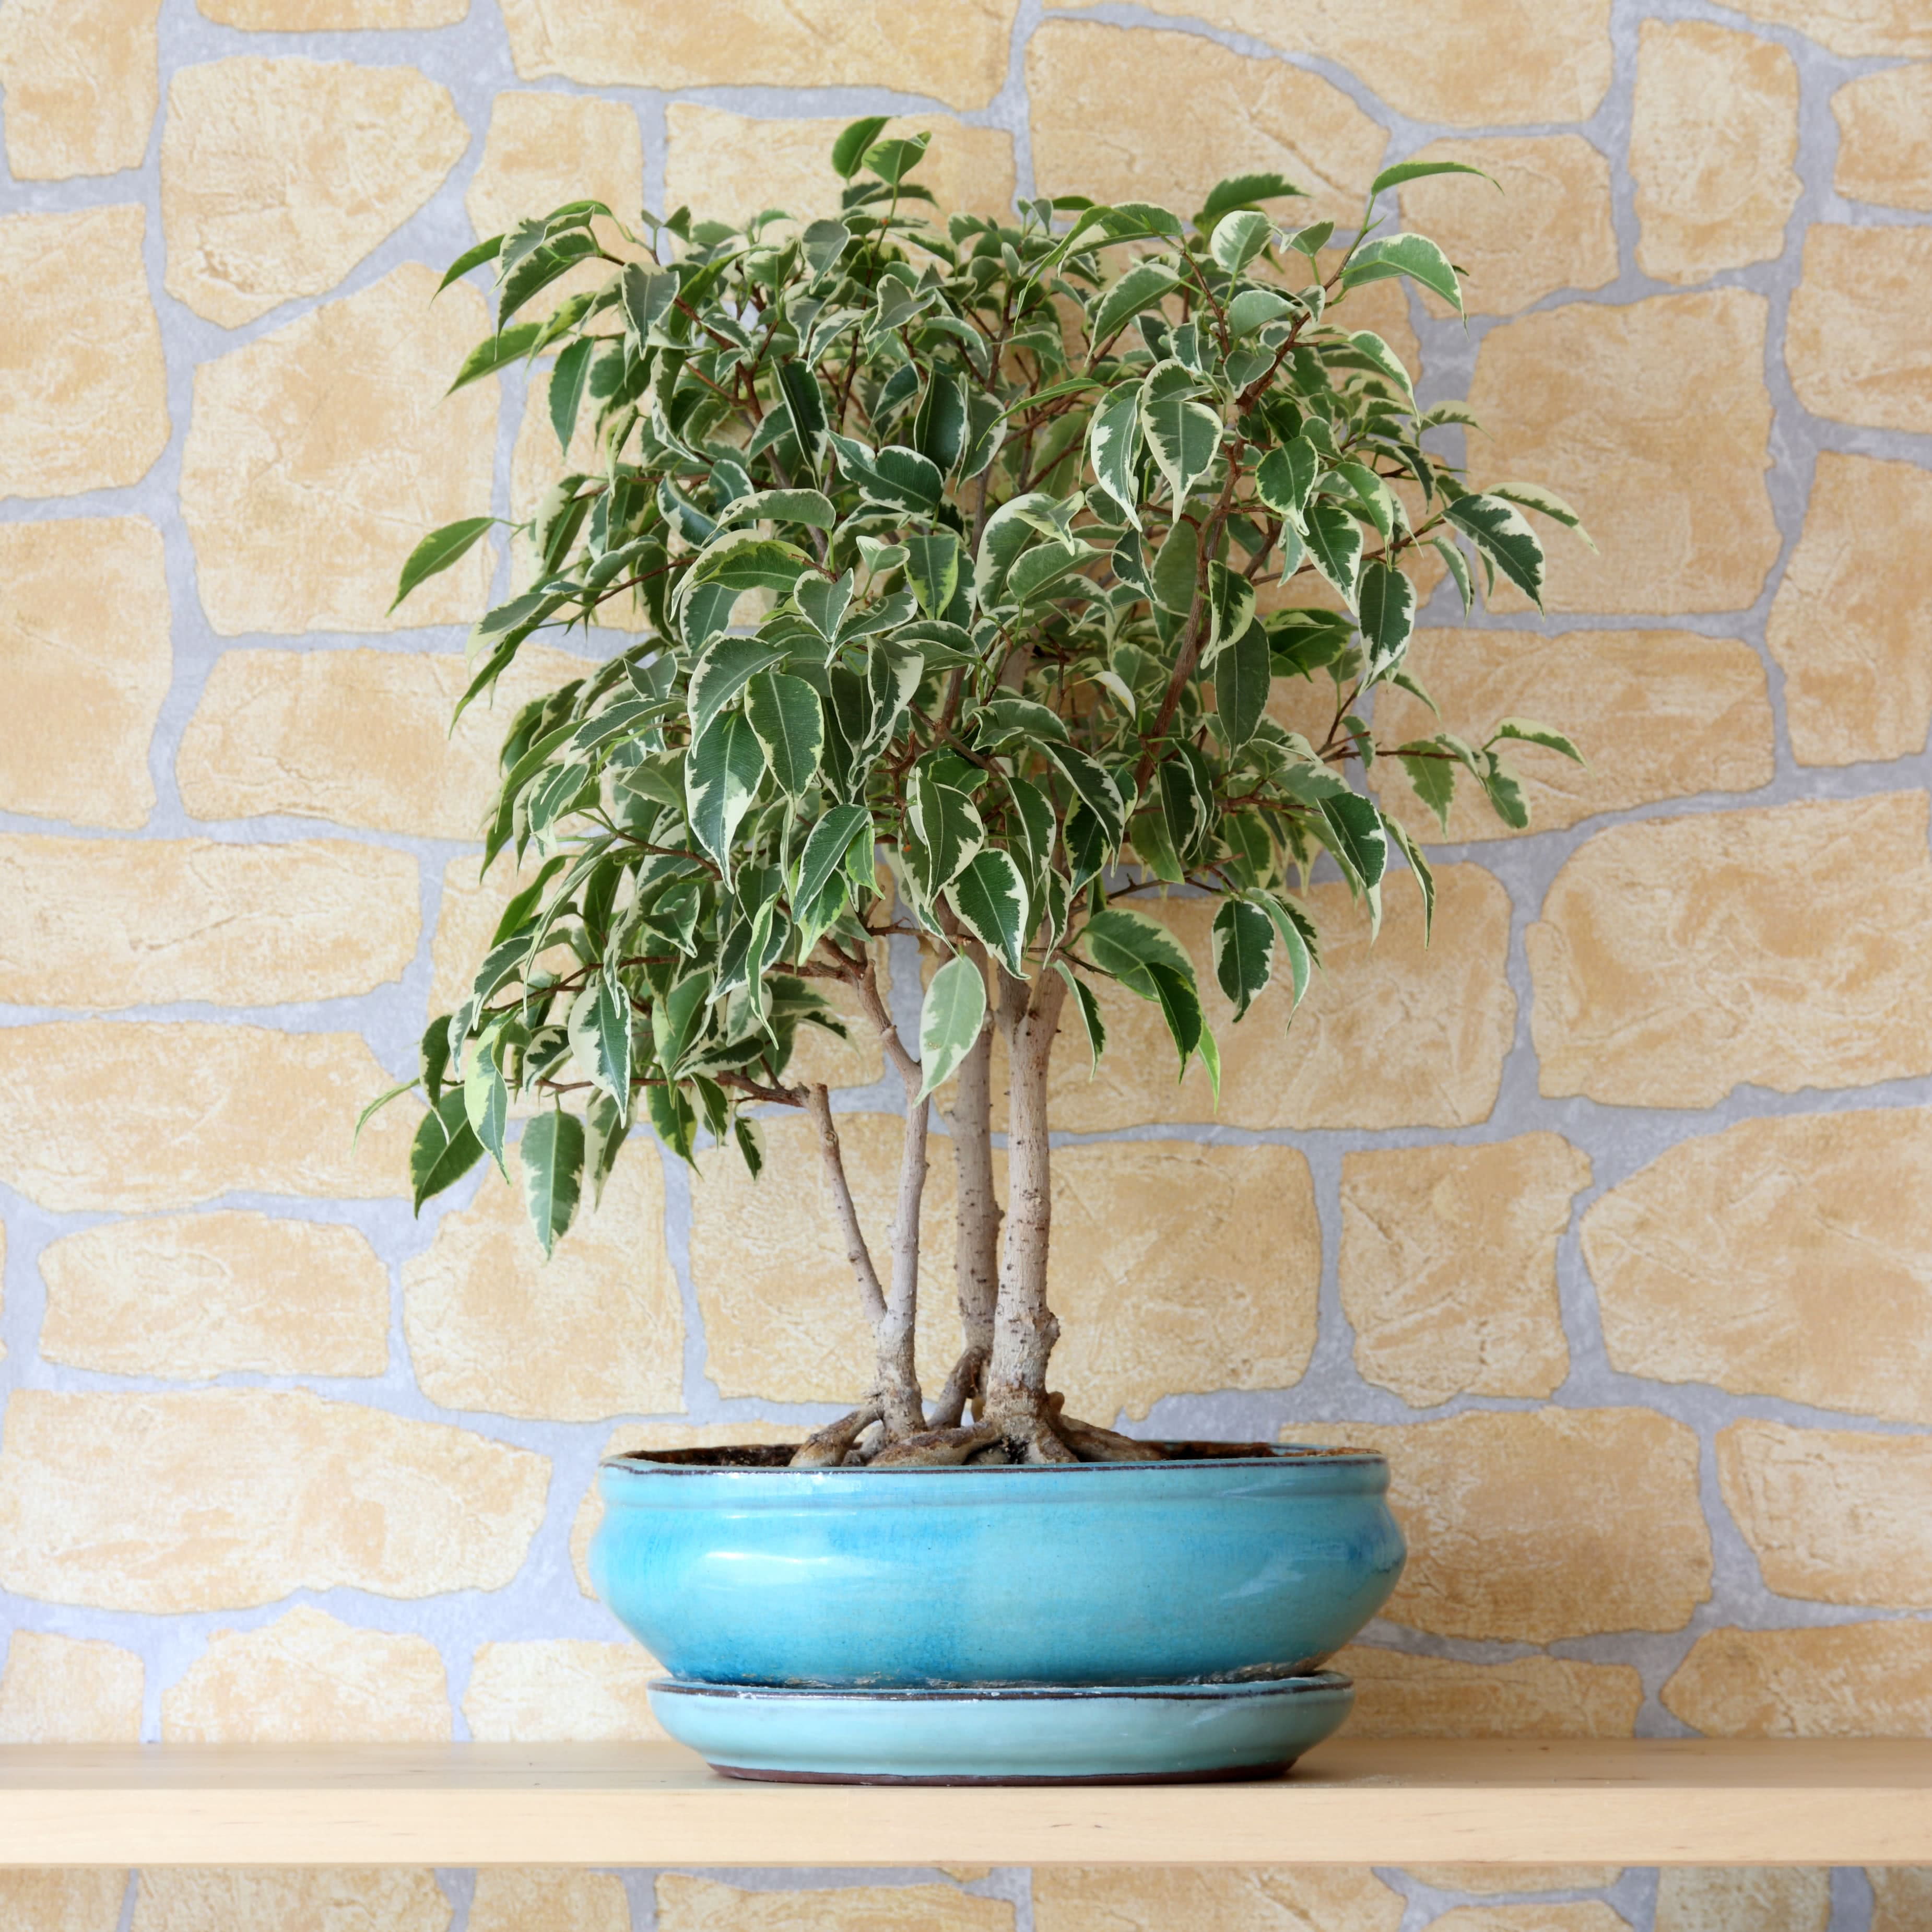 foundation bushes - Ficus Benjamina or Weeping Fig